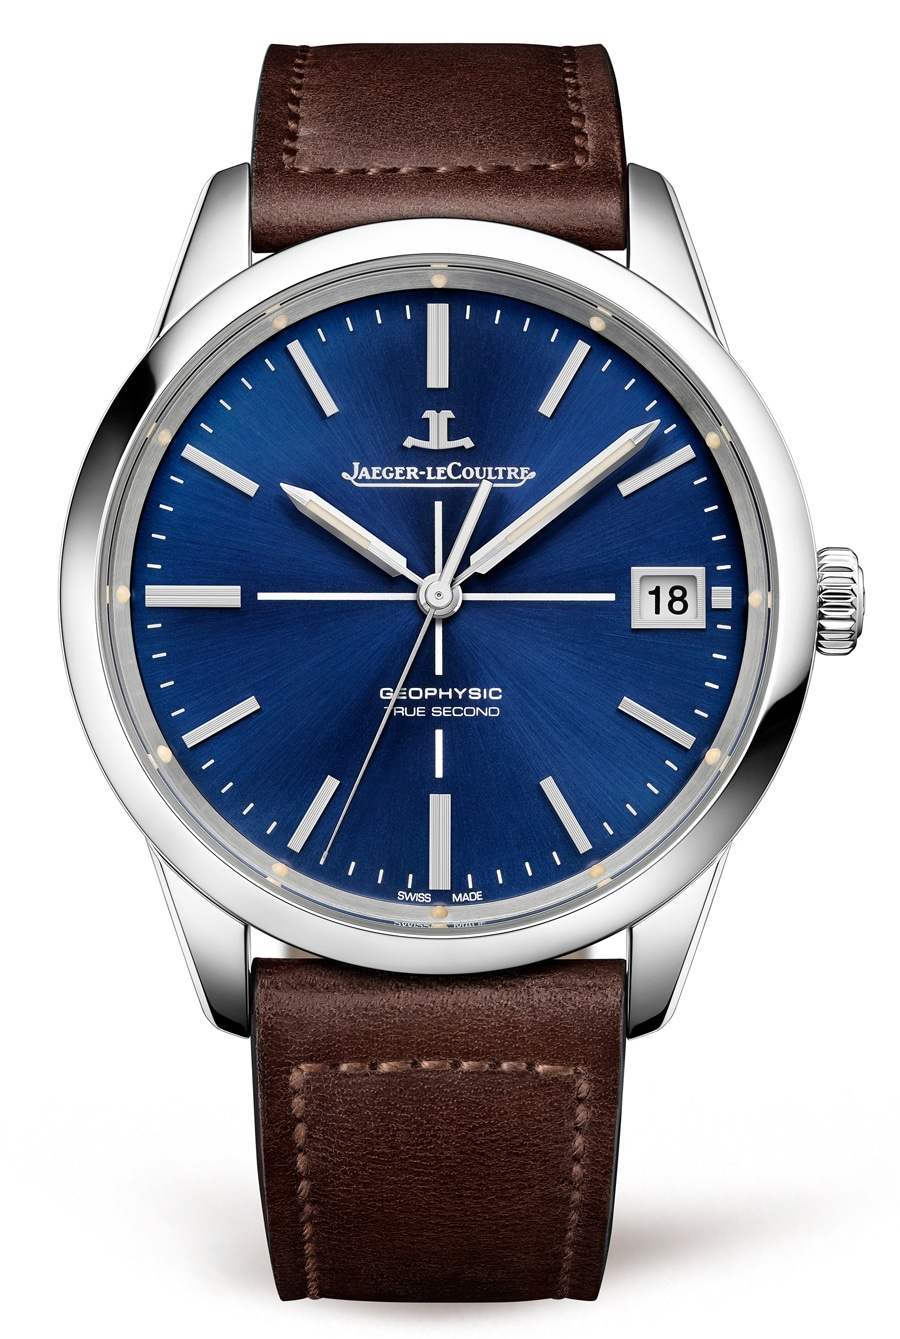 Jaeger-LeCoultre: Geophysic True Second Limited Edition